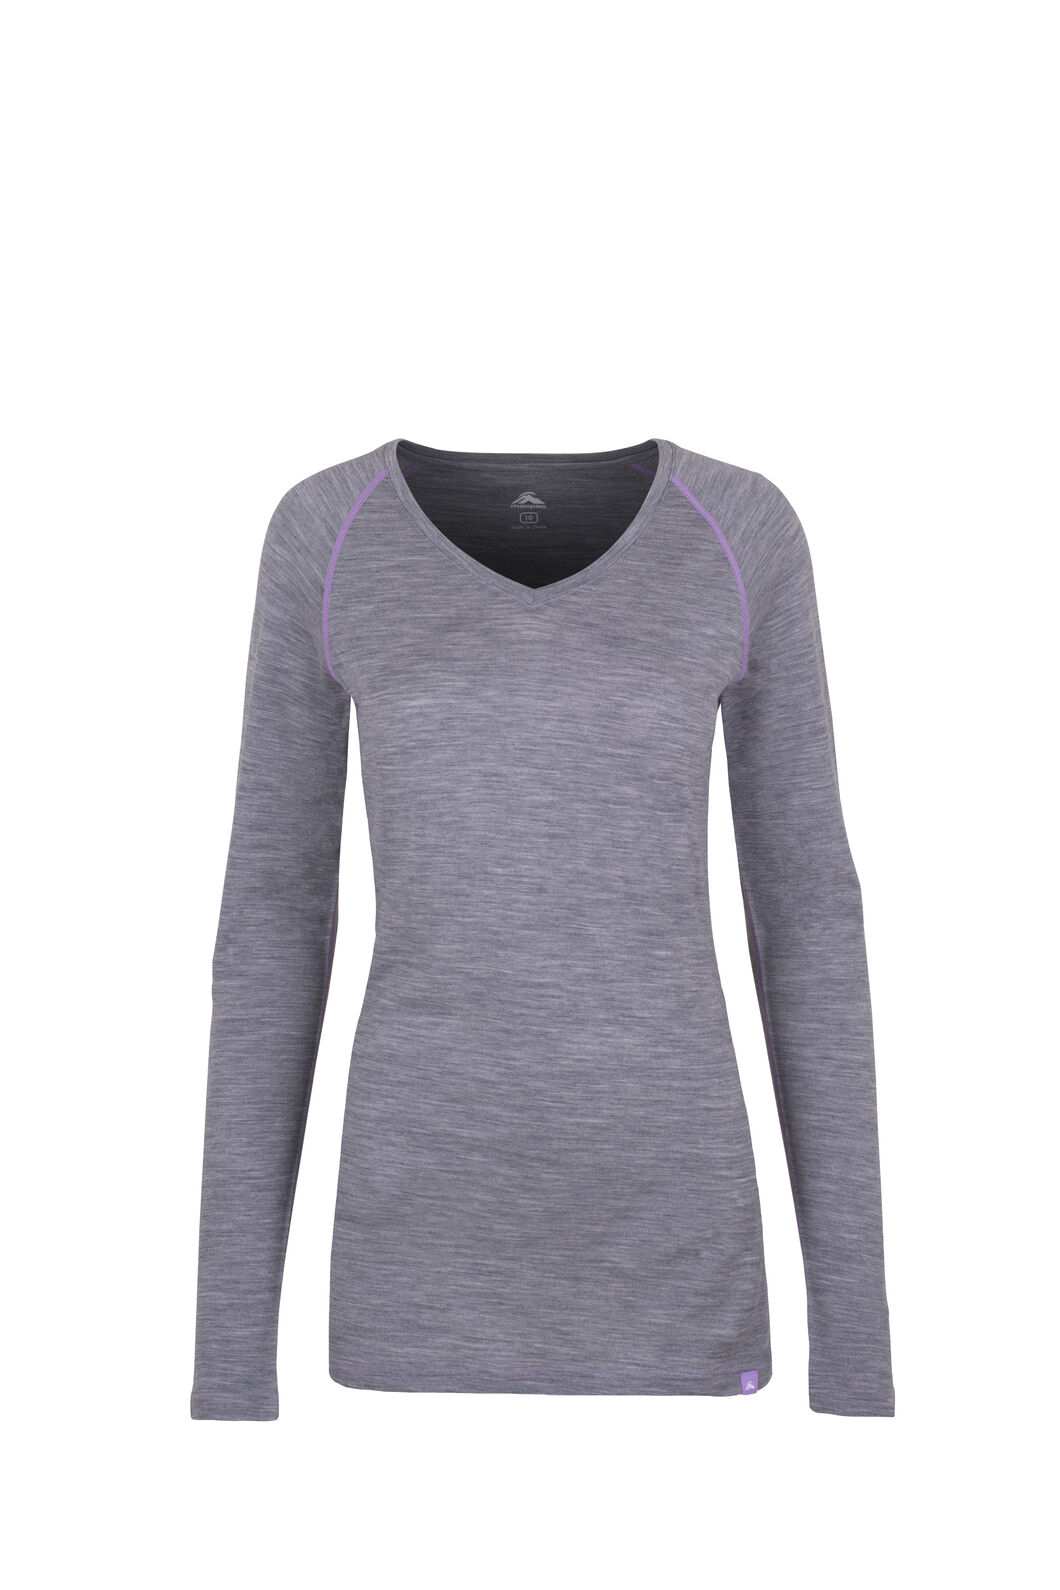 Macpac 150 Merino V-Neck Top - Women's, Grey Marle/Lavender, hi-res